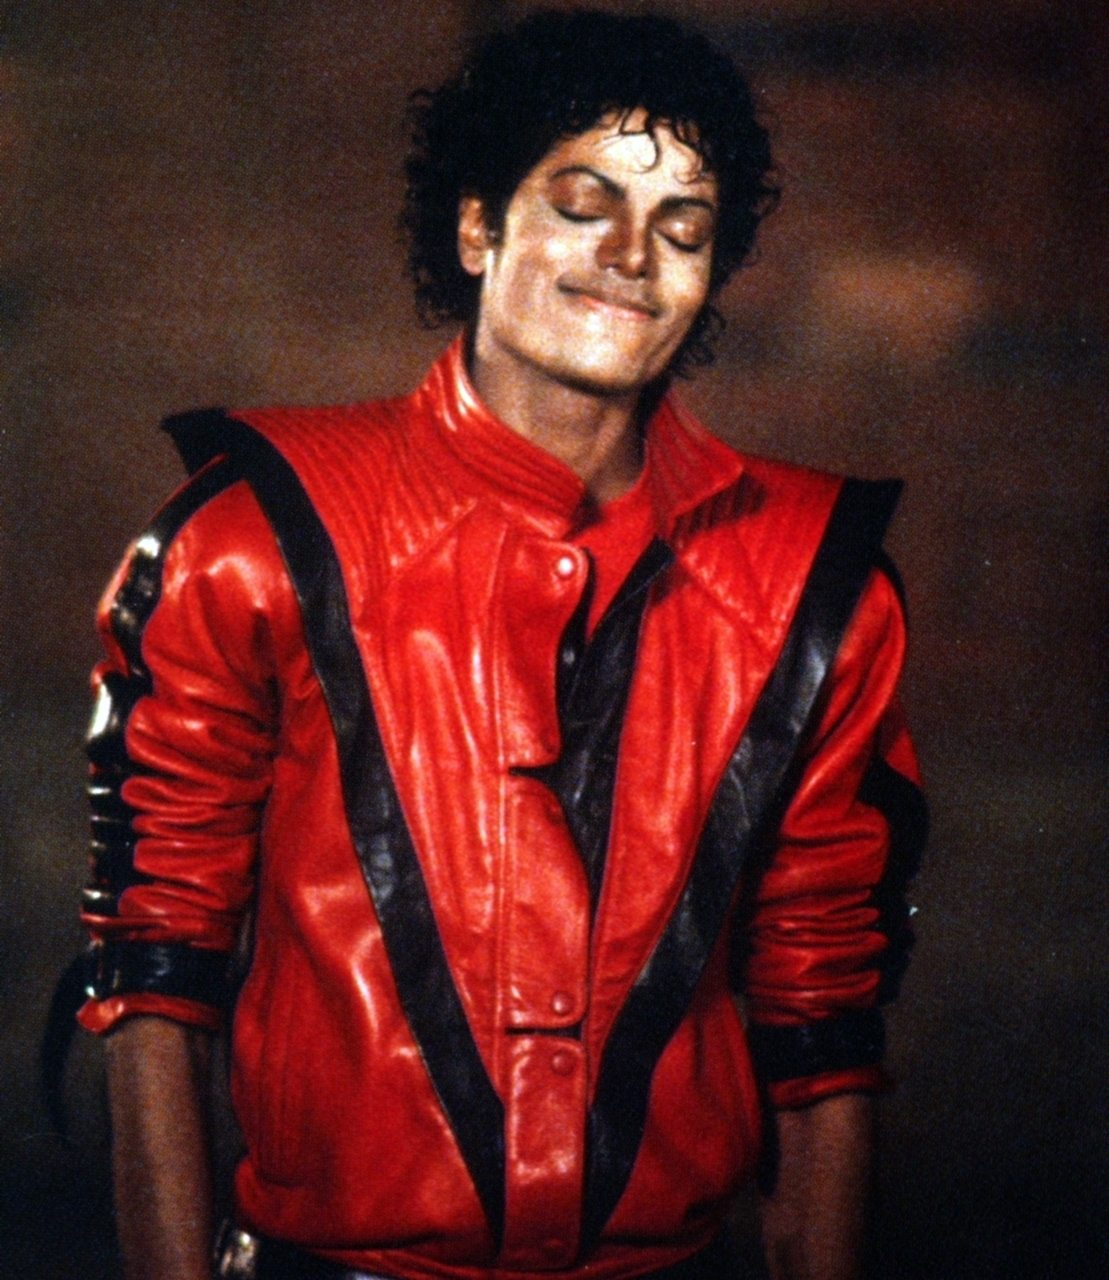 https://i1.wp.com/www.mjworld.net/wp-content/uploads/michael-jackson-thriller.jpg